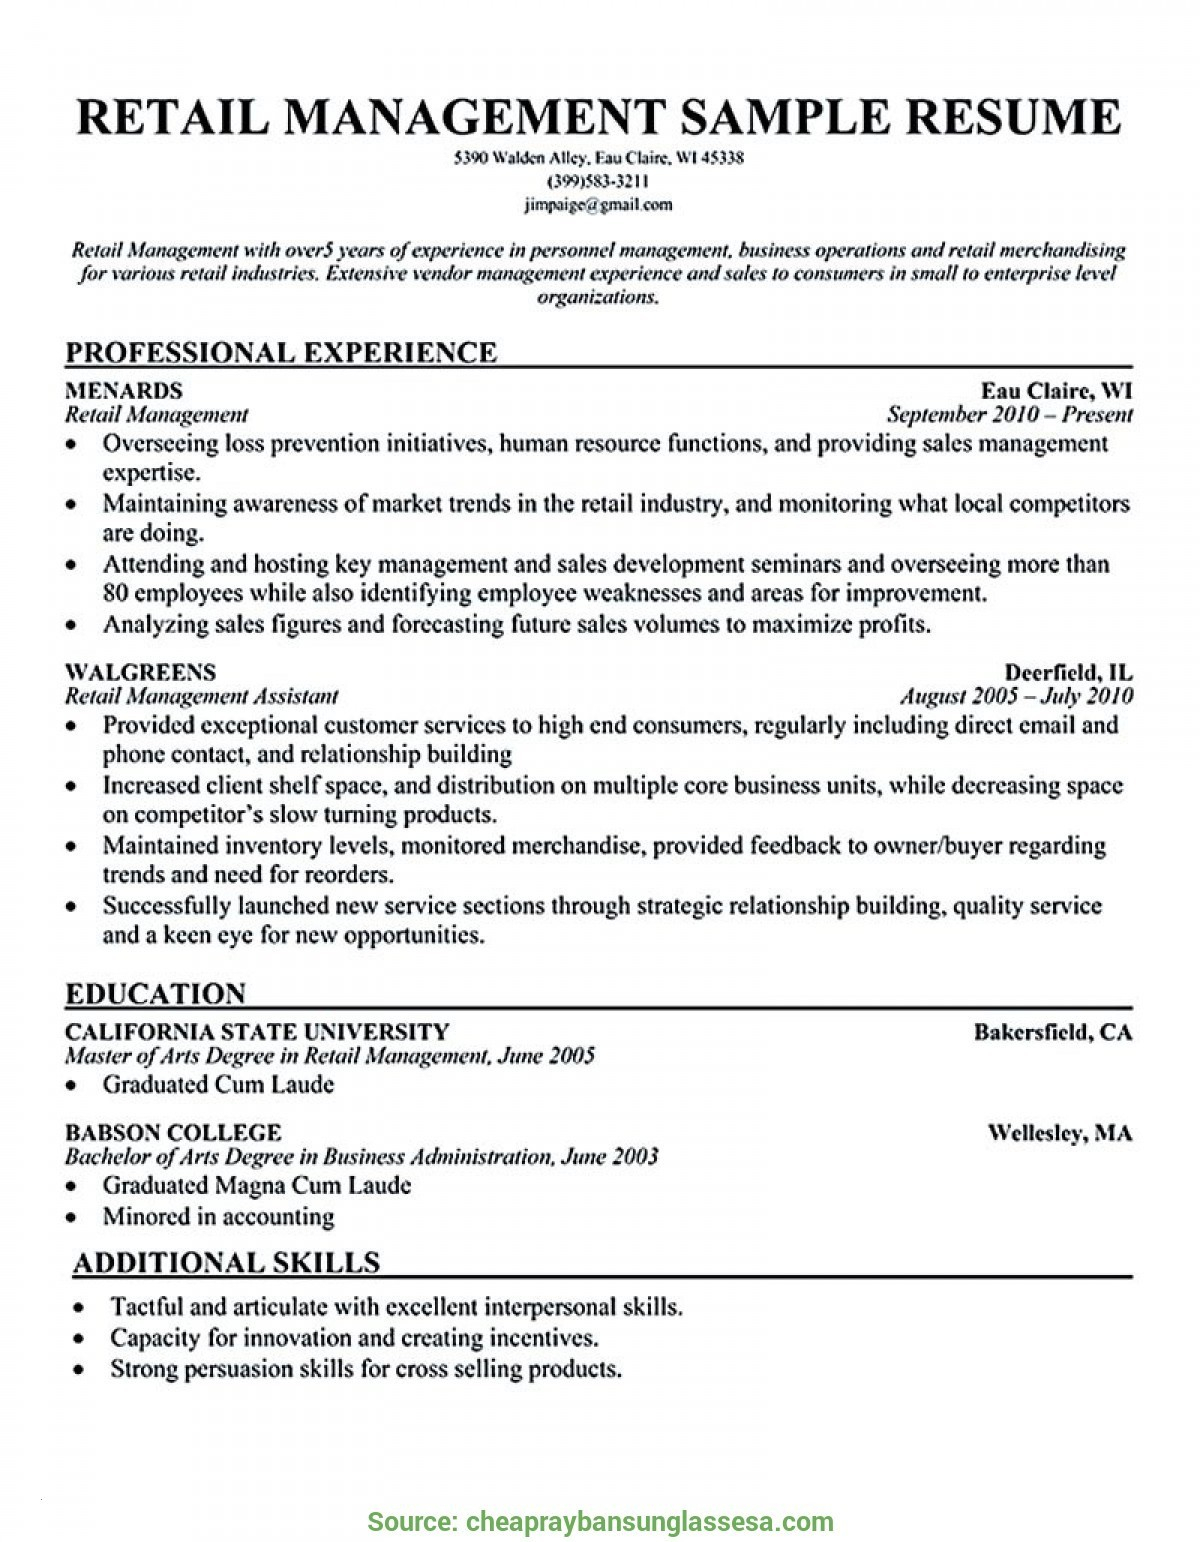 Retail Store Manager Resume Template - Retail Store Manager Resume New Retail Store Manager Resume New